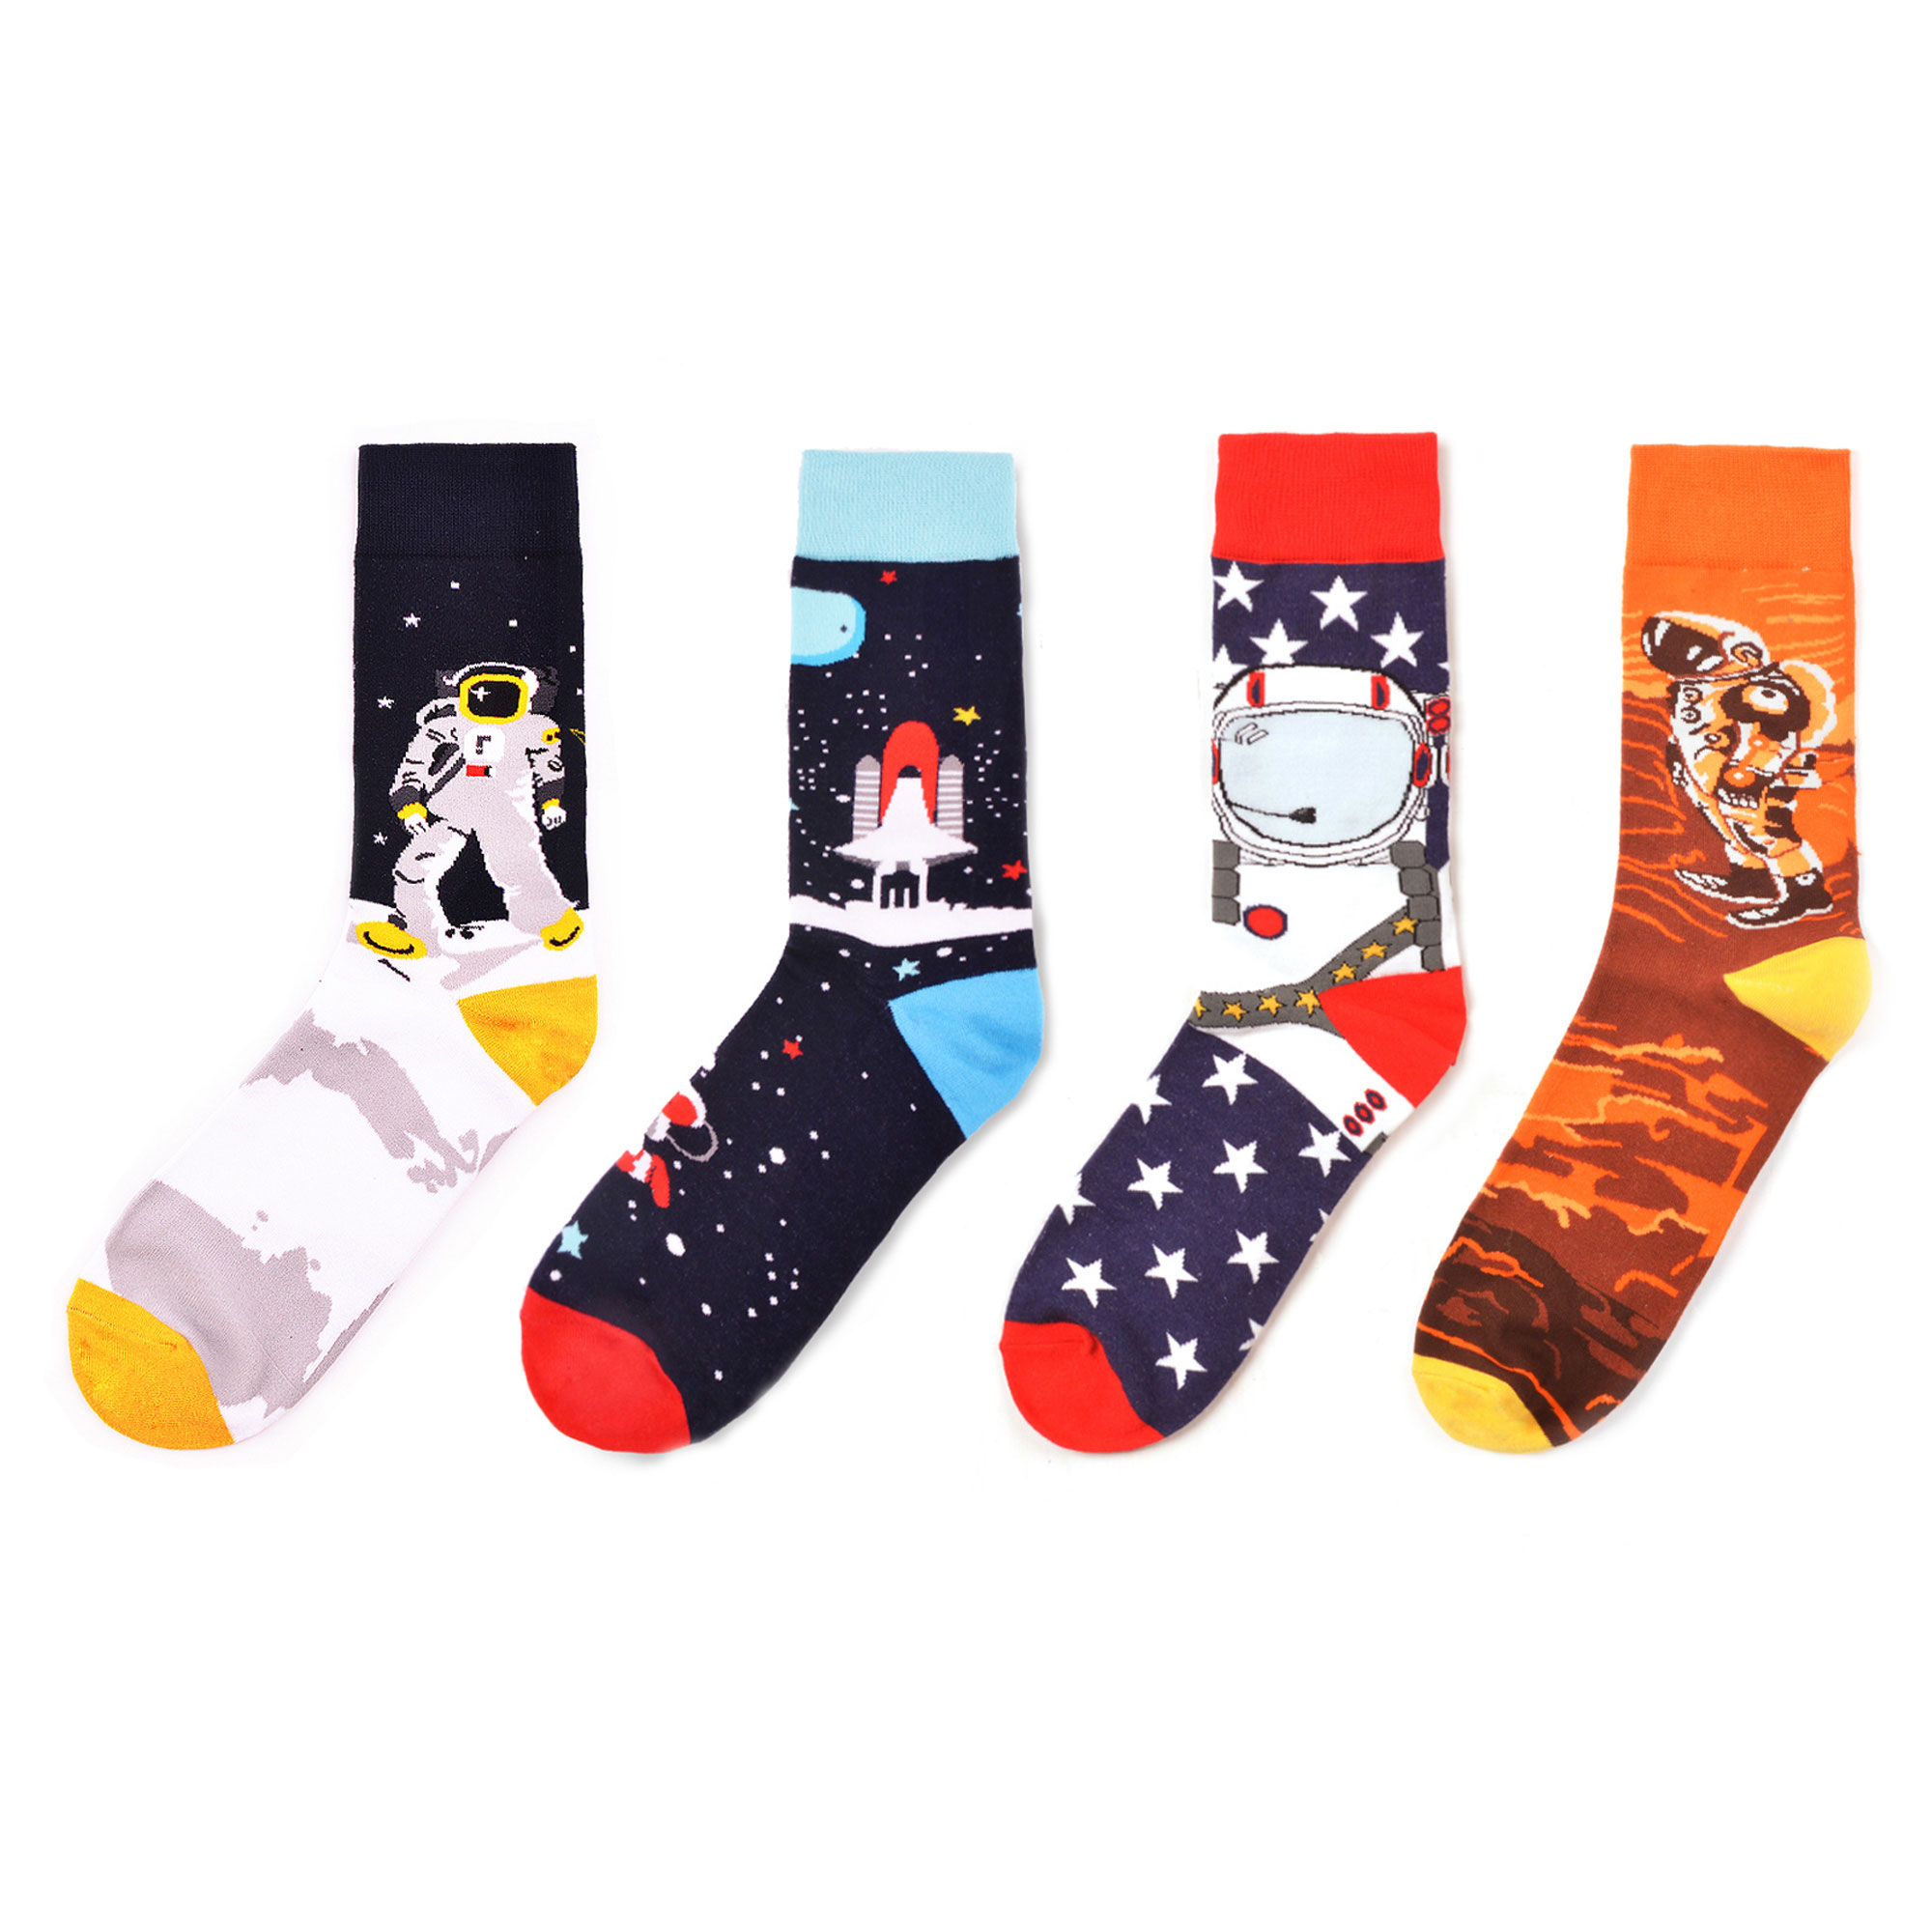 Colorful Men's Crew Skateboard Socks Funny Design Combed Cotton Dress Wedding Socks Space Man Pattern Fashion Casual Party Sock